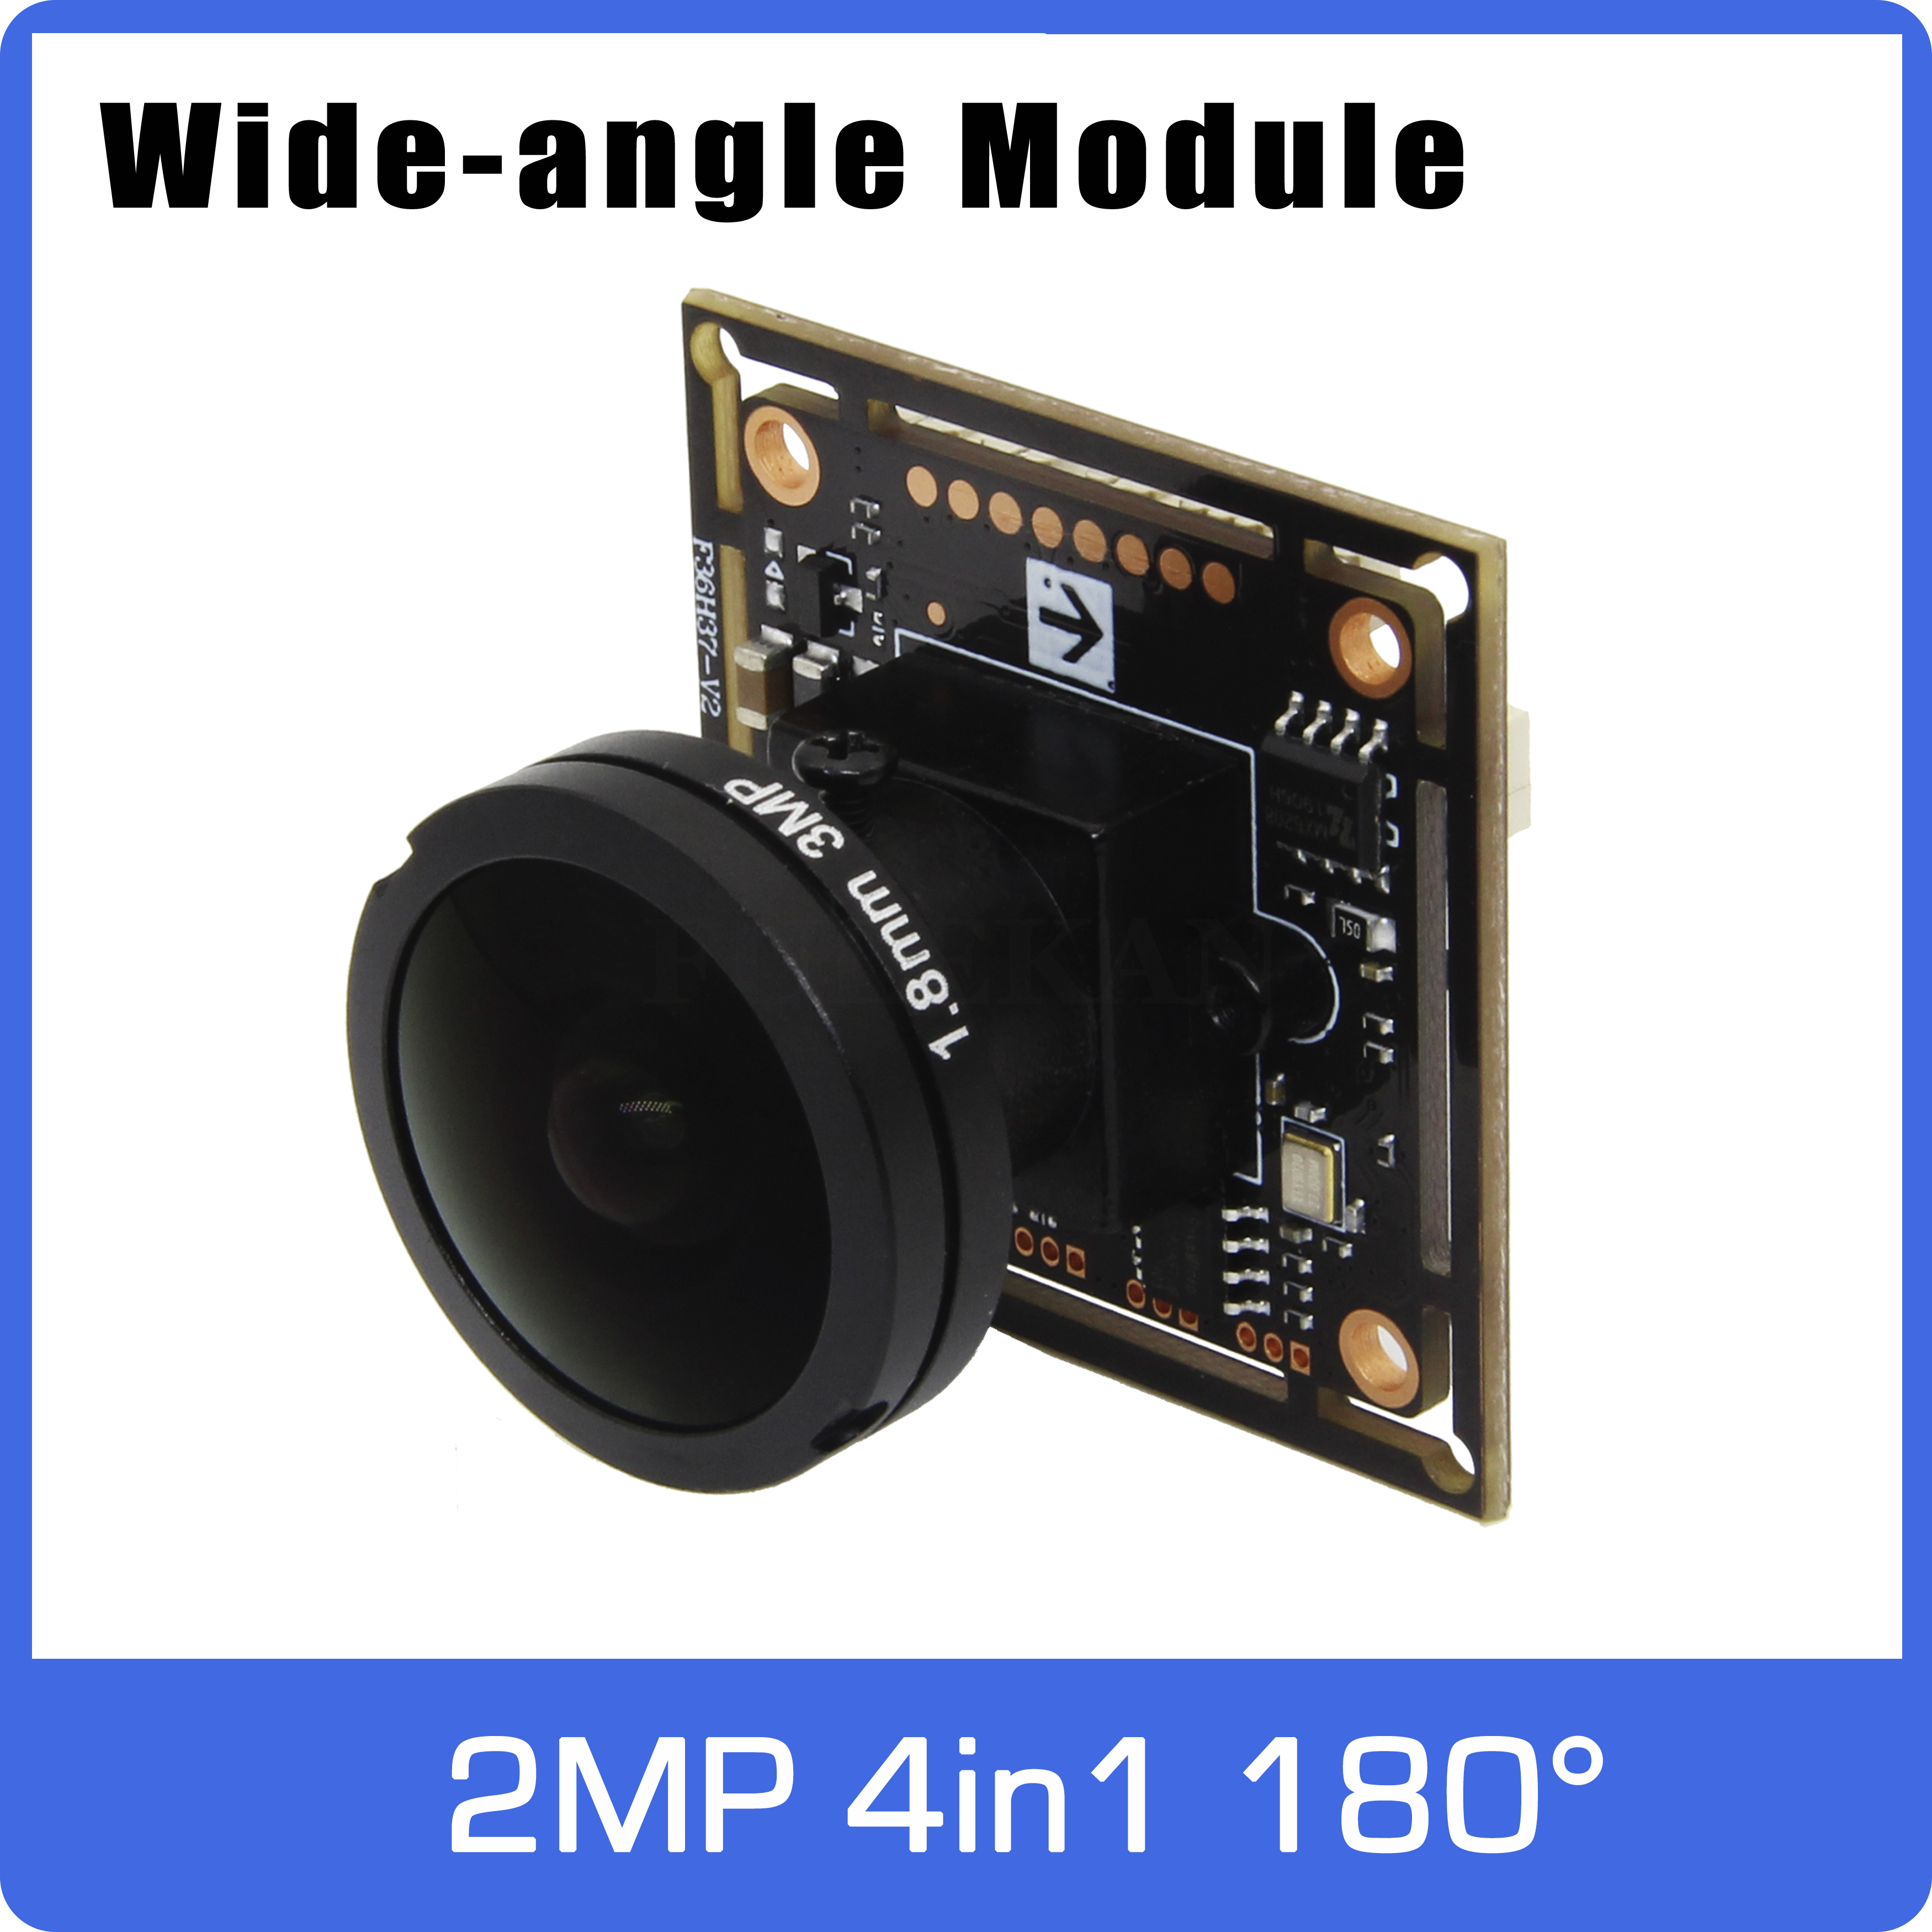 Super Wide-angle Panoramic AHD Camera Of 180 Degrees  4in1 Module Board With Fisheye Lens UTC Coaxial OSD Control 11 Languages